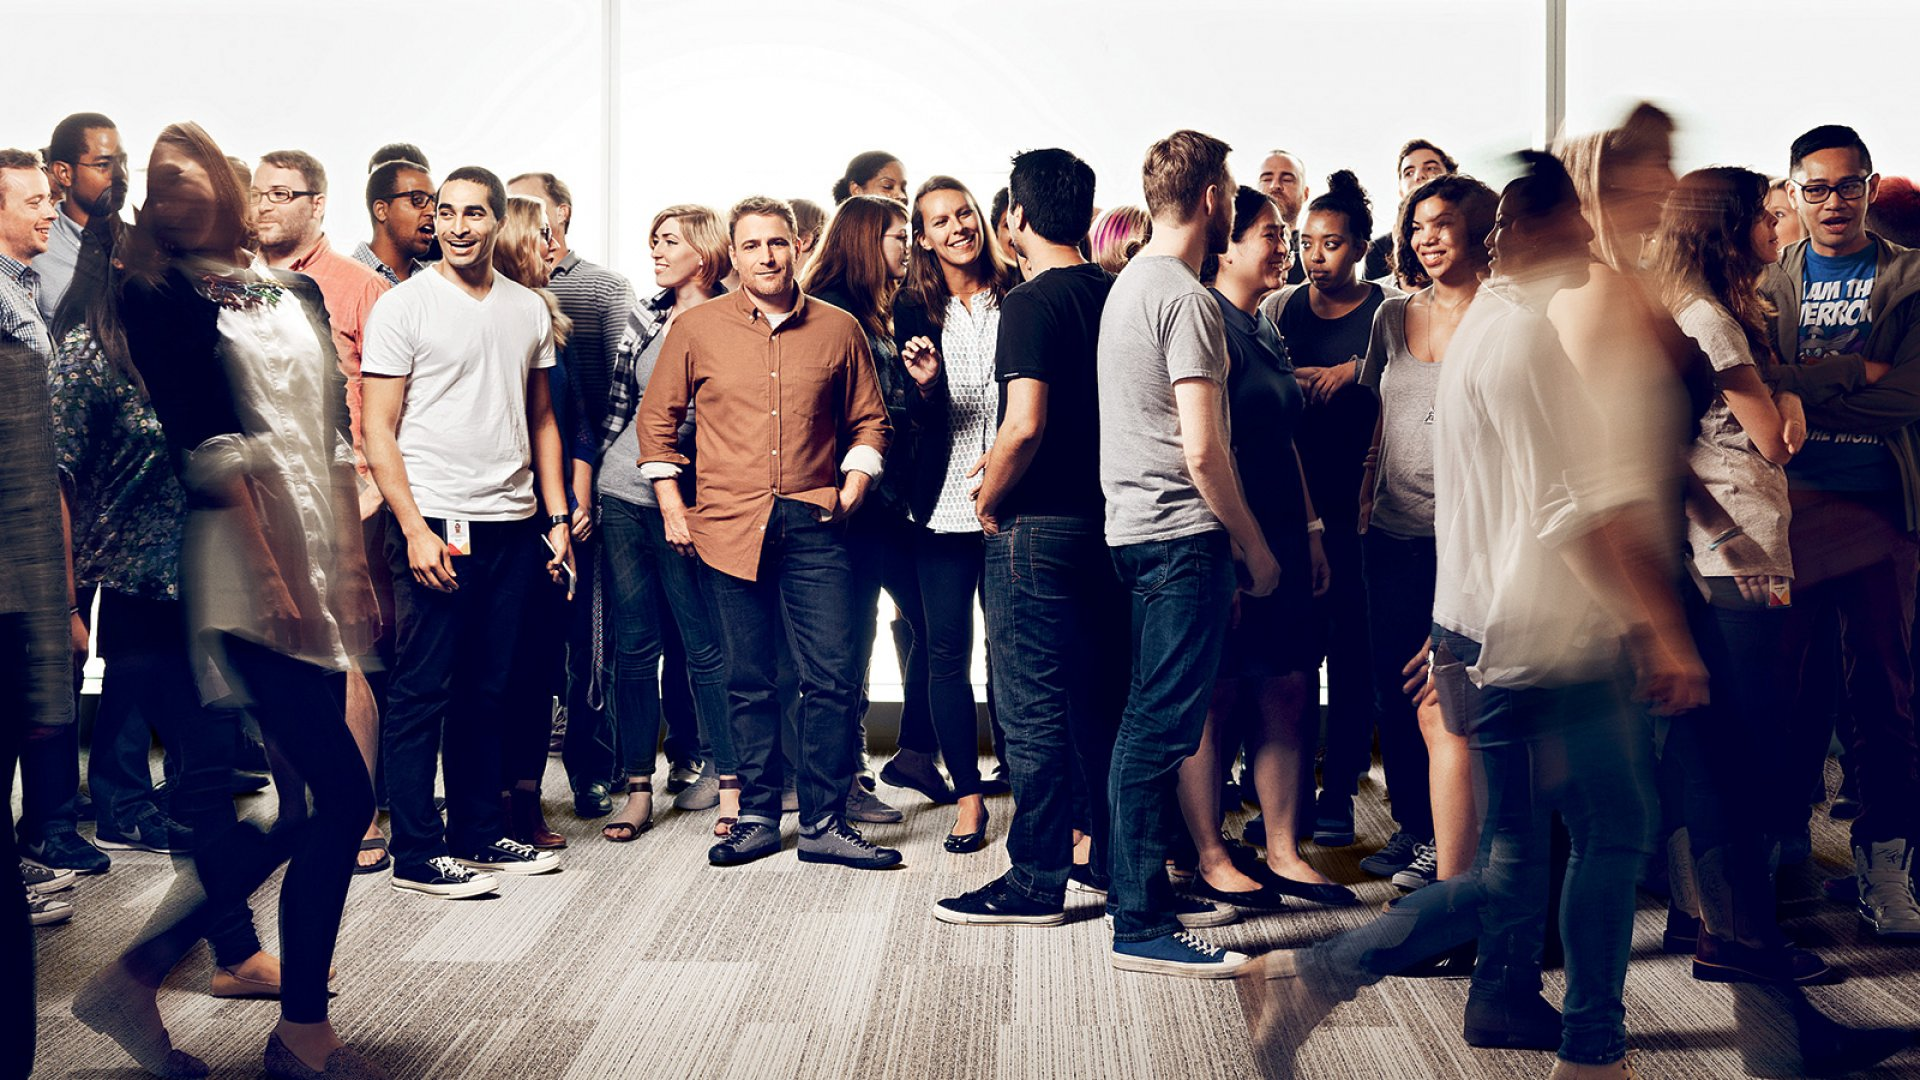 Though he's making online communication faster, Stewart Butterfield, co-founder and CEO of Slack, still believes in face time with his team, shown here at the company's San Francisco headquarters.